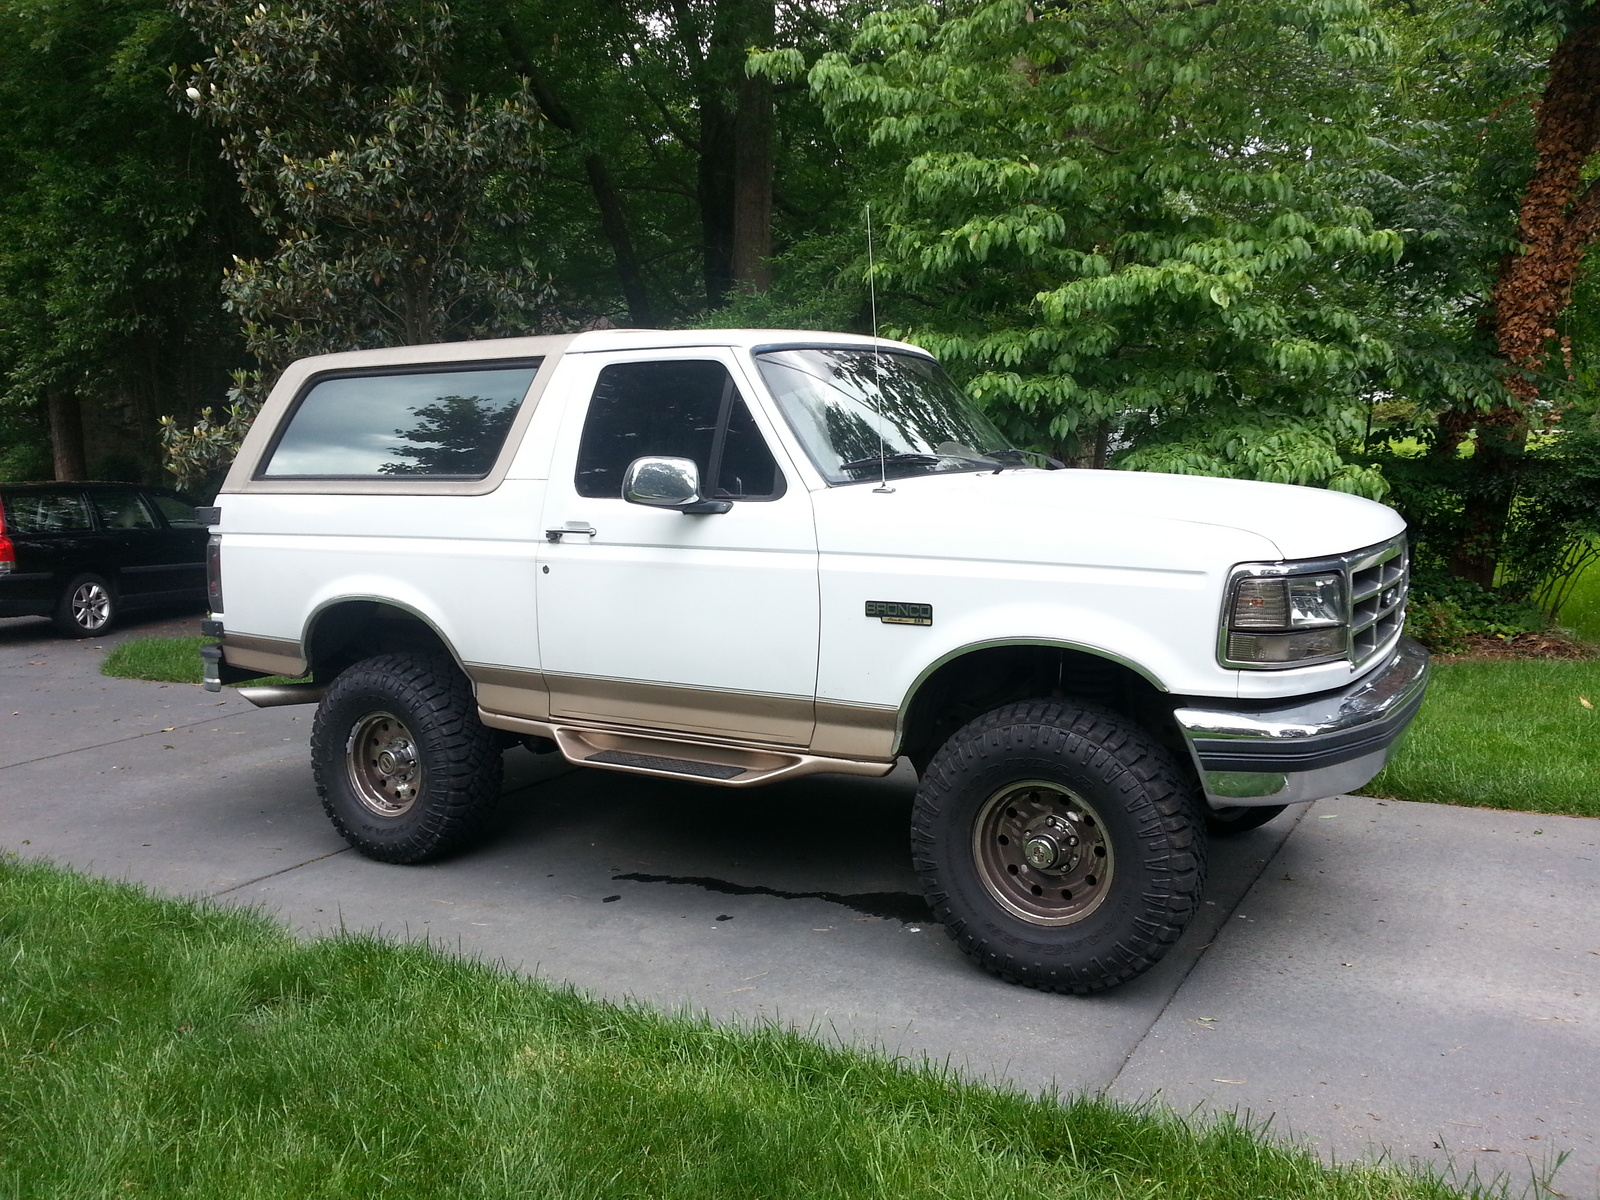 Bronco Car 1996 28 Images Gallery For Gt Ford Xlt 1980 Interior Truck